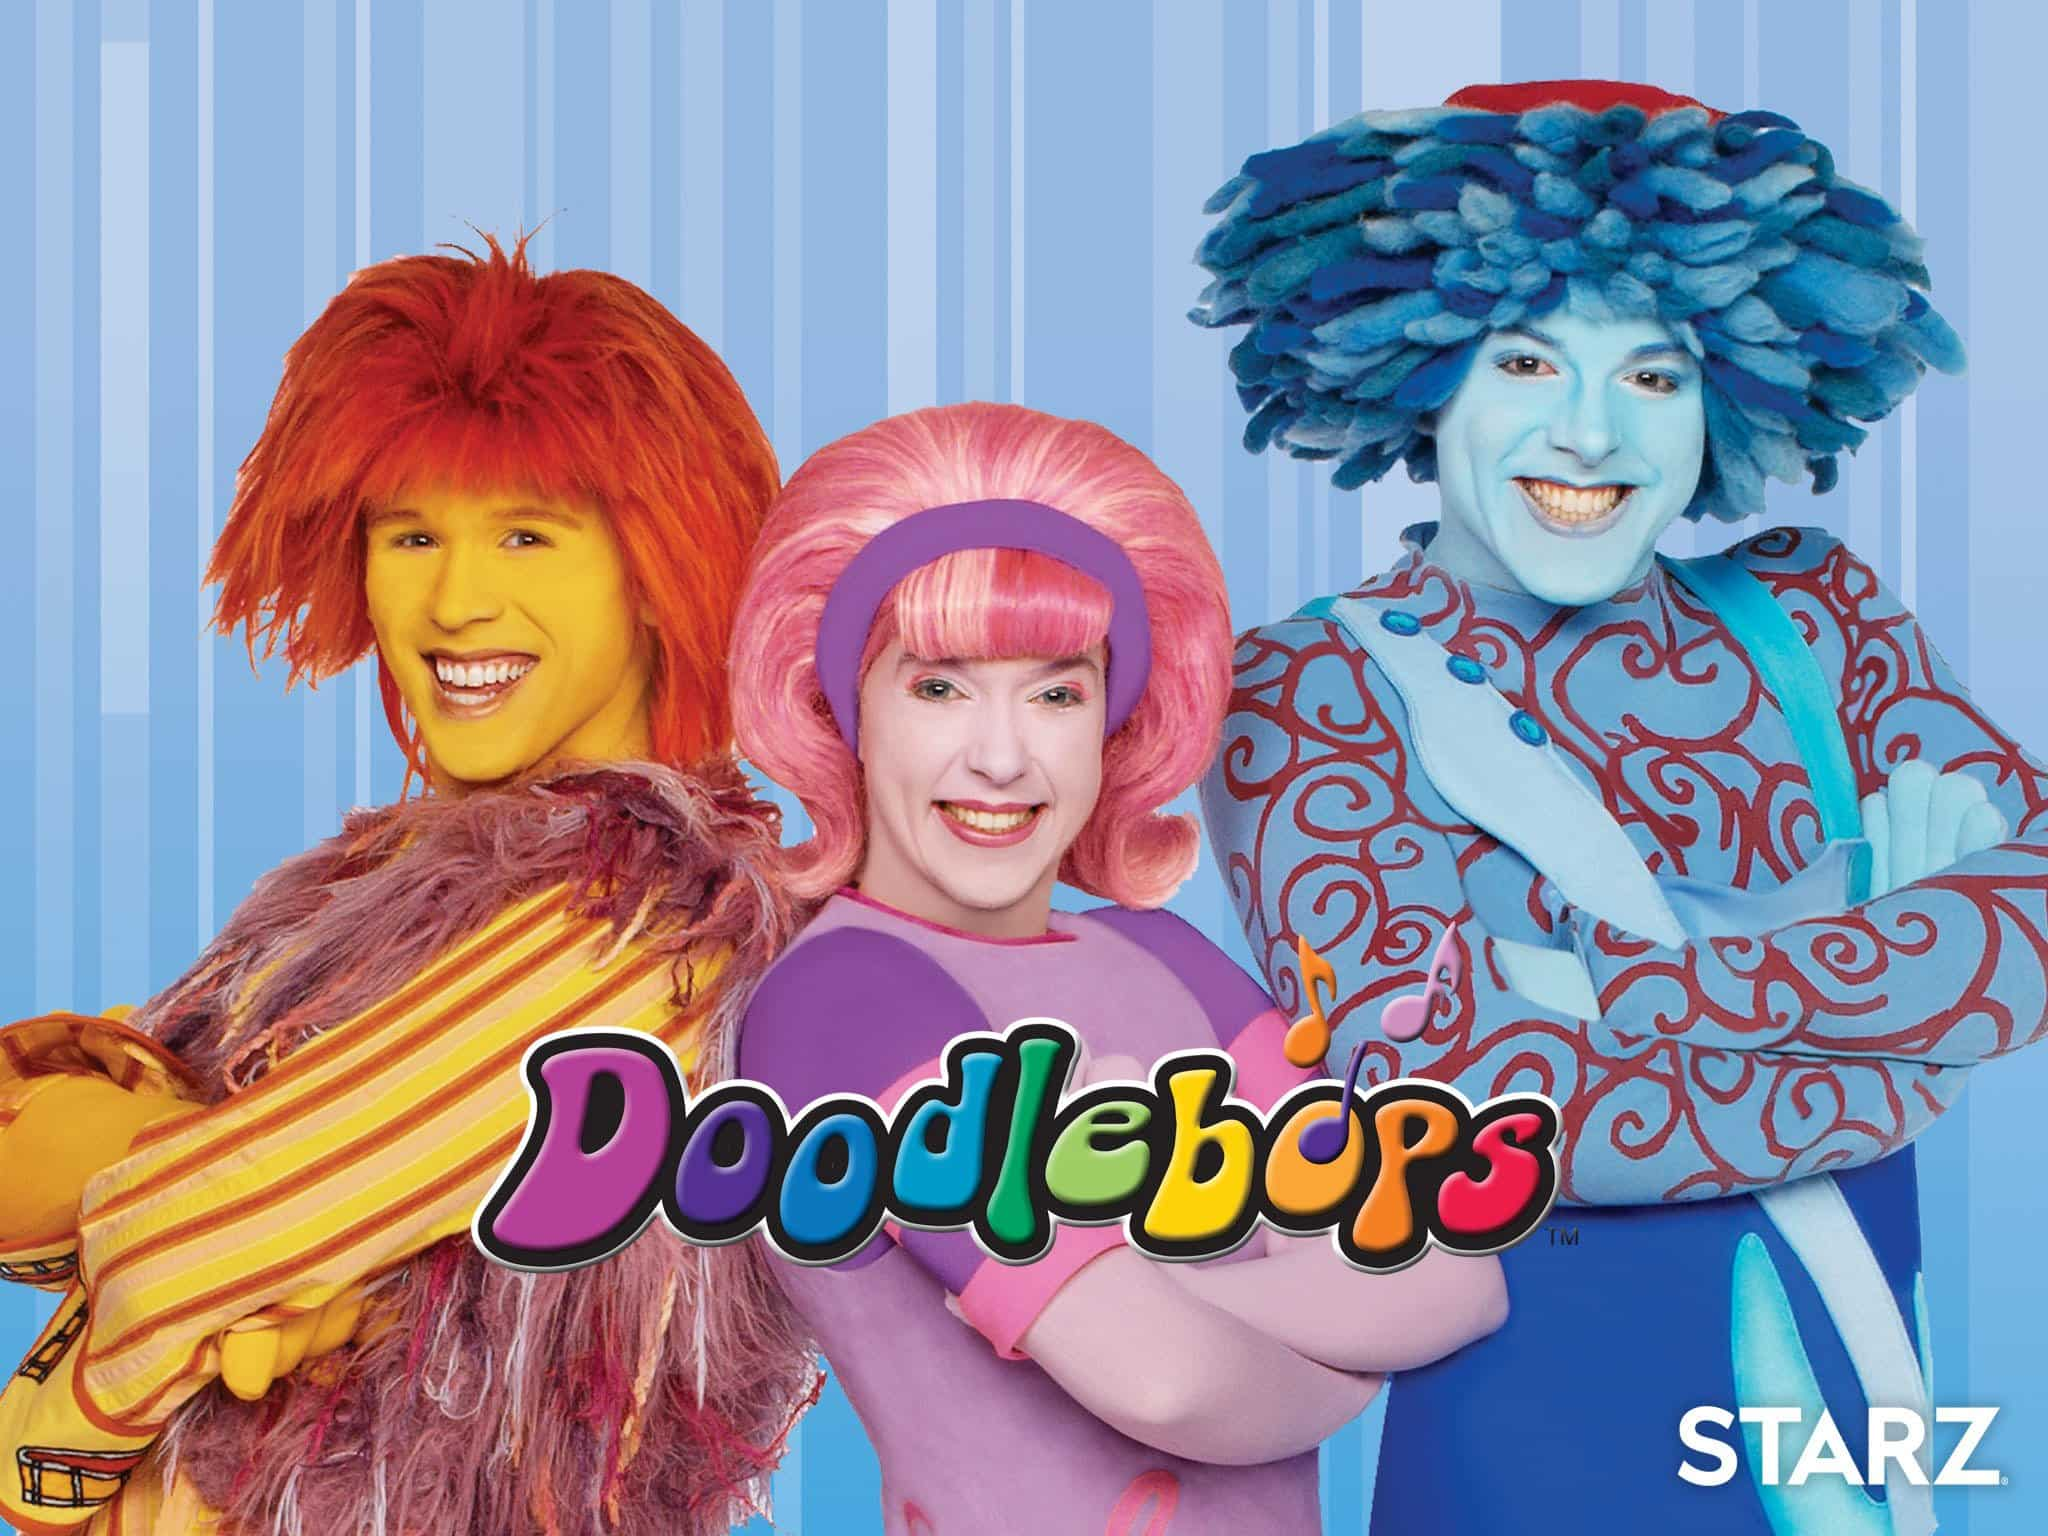 Doodlebops coloring pages, Doodlebops coloring book- DinoKids.org   1536x2048